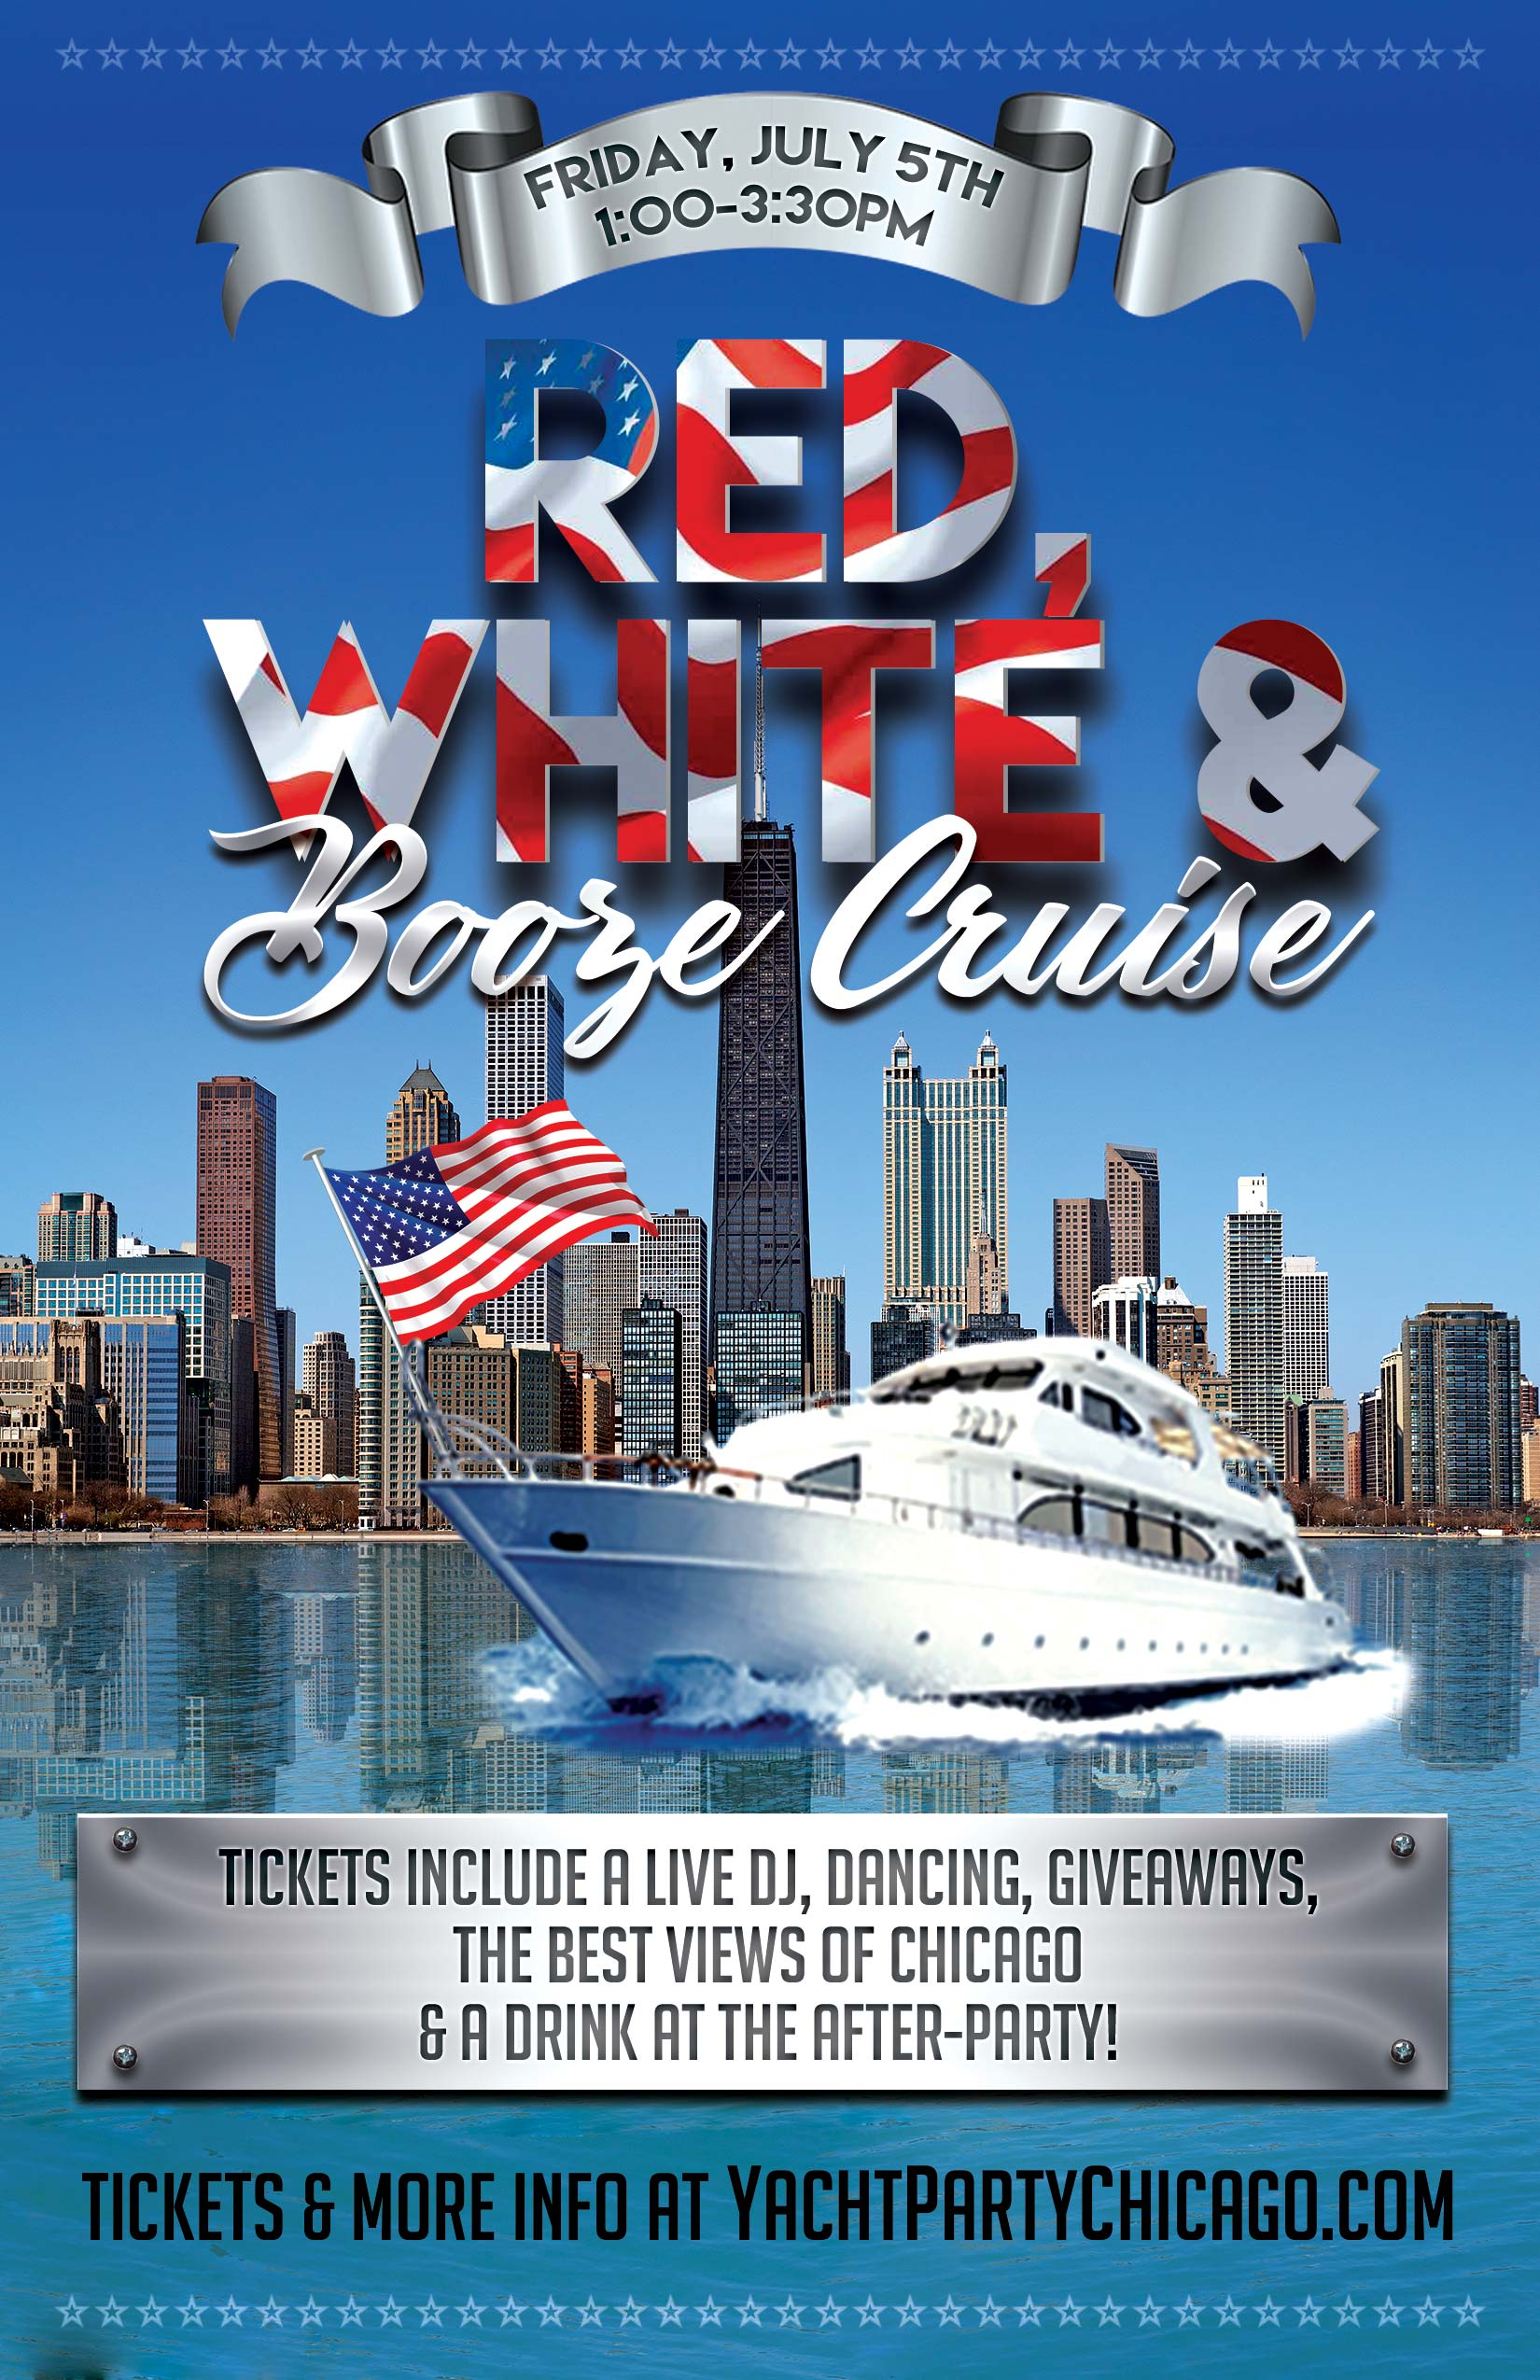 Red, White and Booze Cruise Party - Tickets include a Live DJ, Dancing, Giveaways, a drink at the after party and the best views of Chicago!